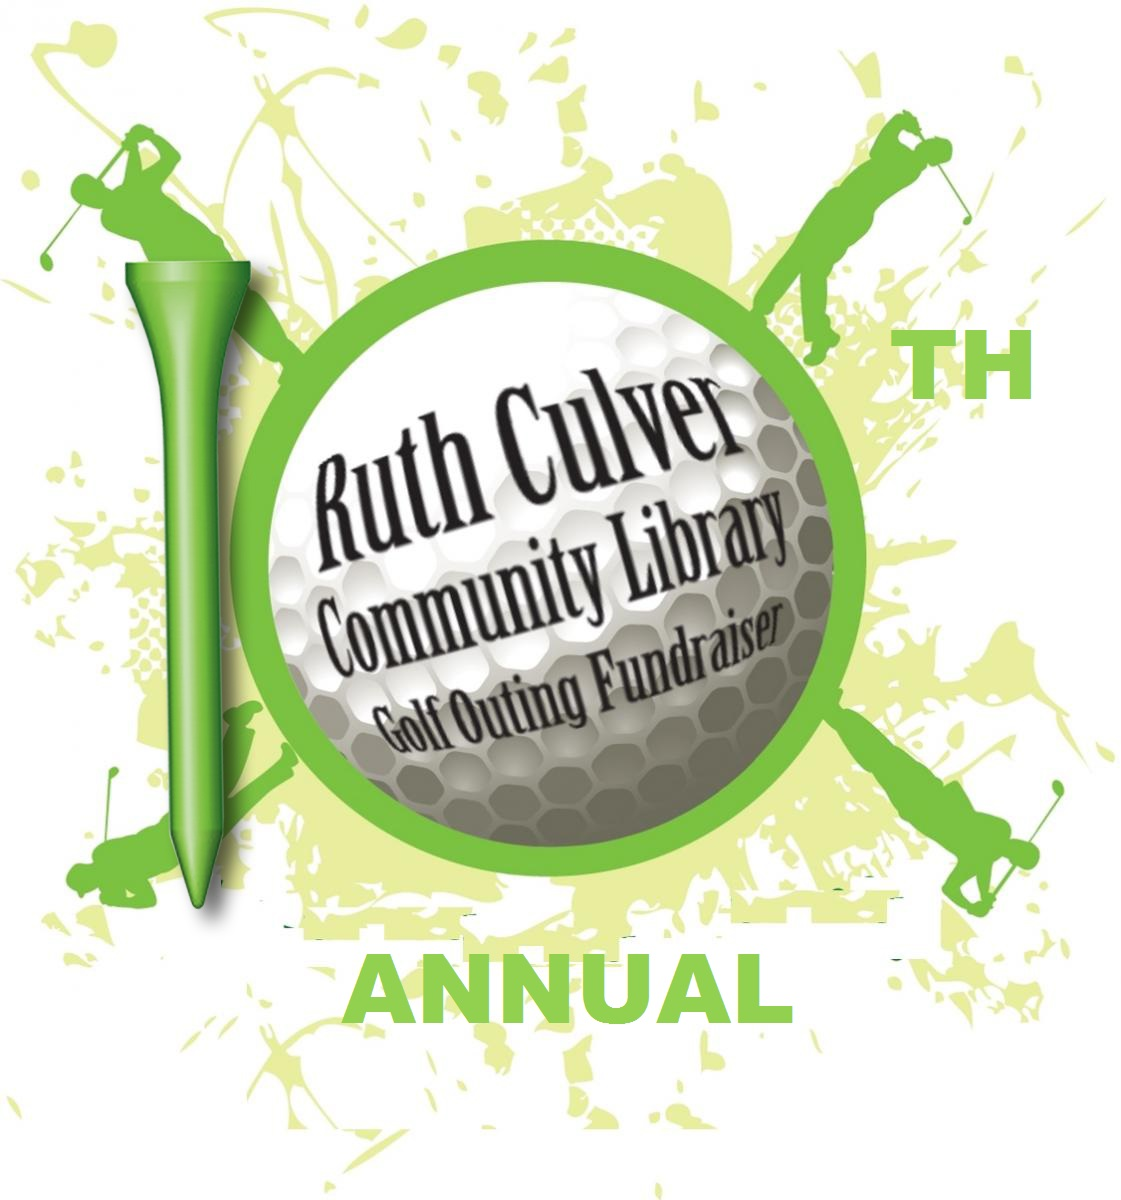 Golf Outing 2018 Ruth Culver Community Library